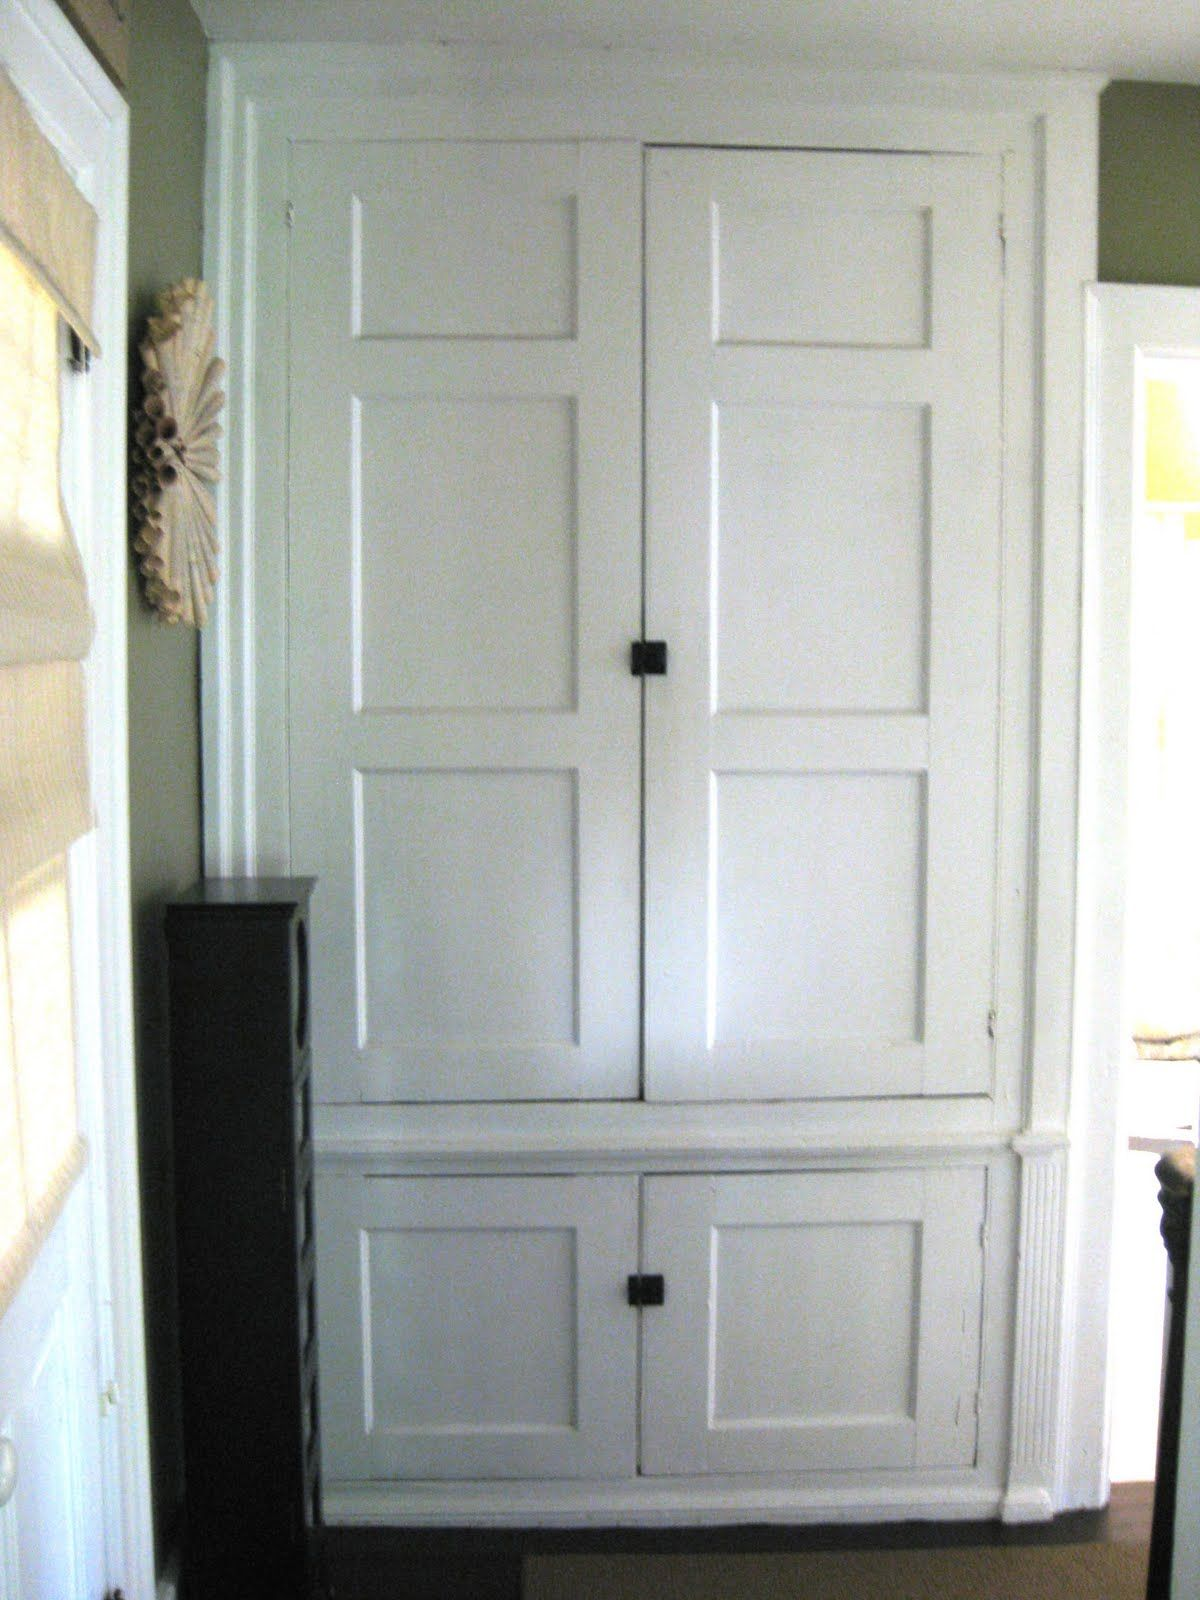 Recently A Friend Asked Me What I M Going To Do When I M Finished Decorating My House Finished Decorating T Closet Built Ins Hallway Cabinet Linen Closet Built in linen closet